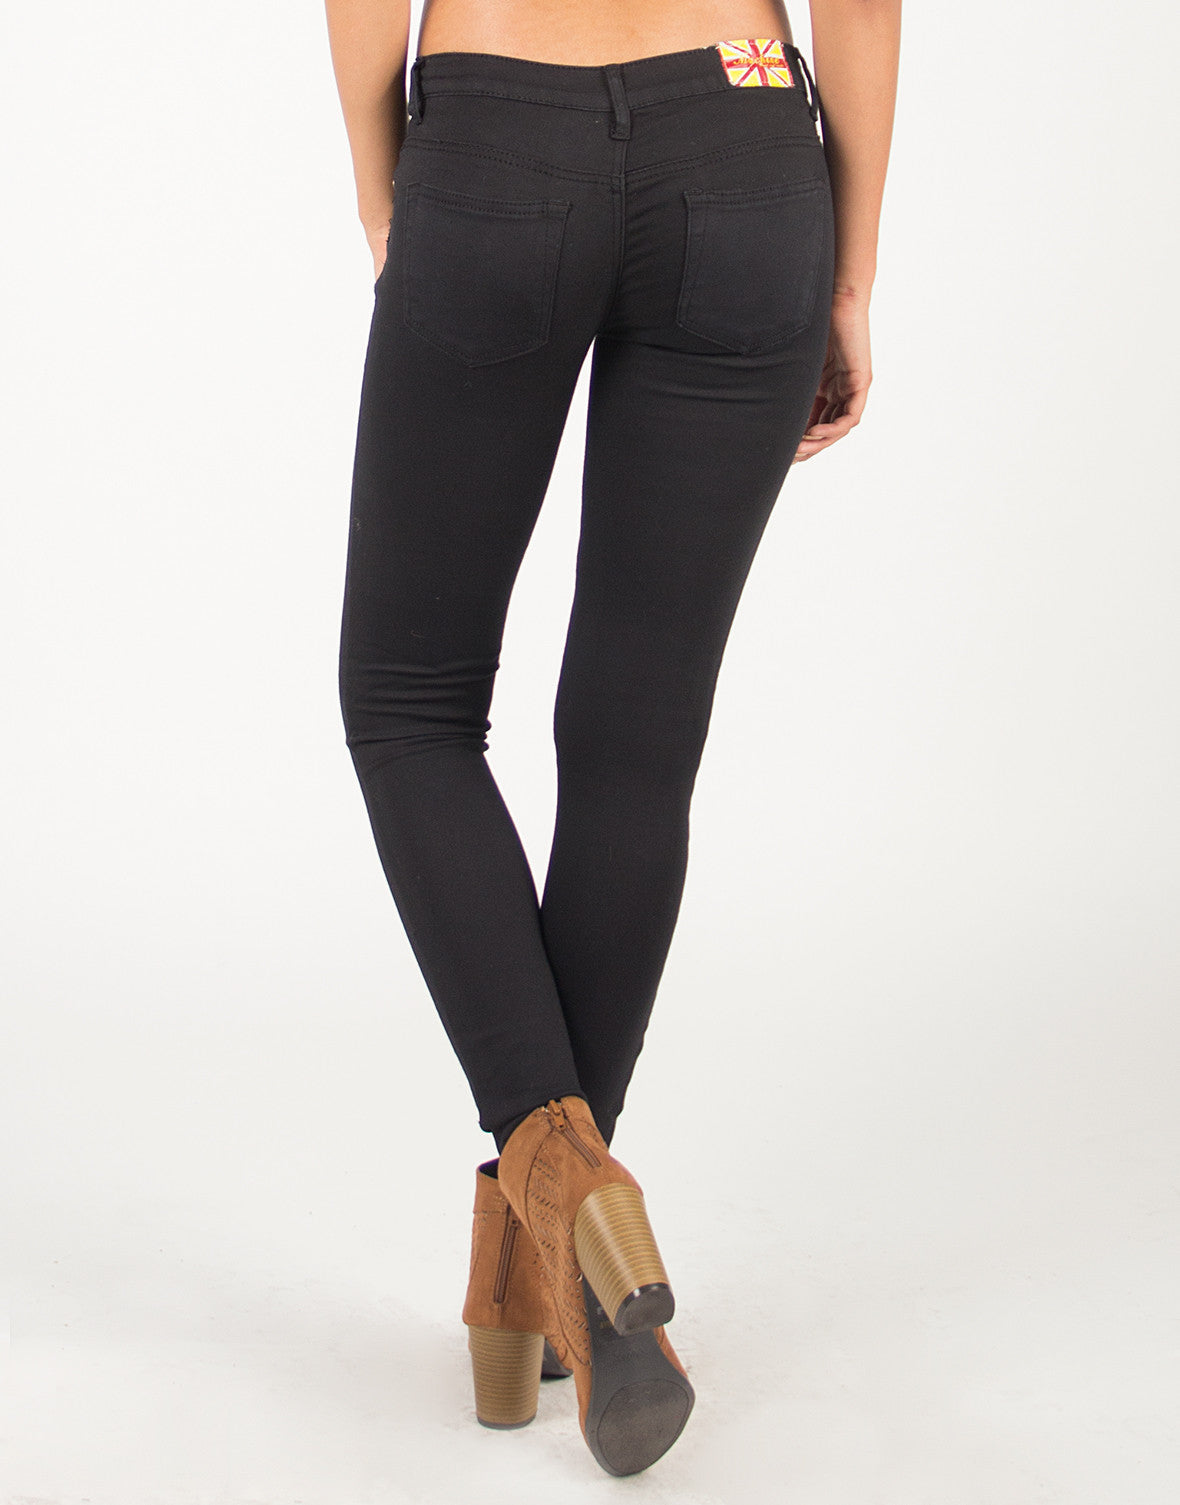 Super Stretchy Classic Black Skinny Jeans